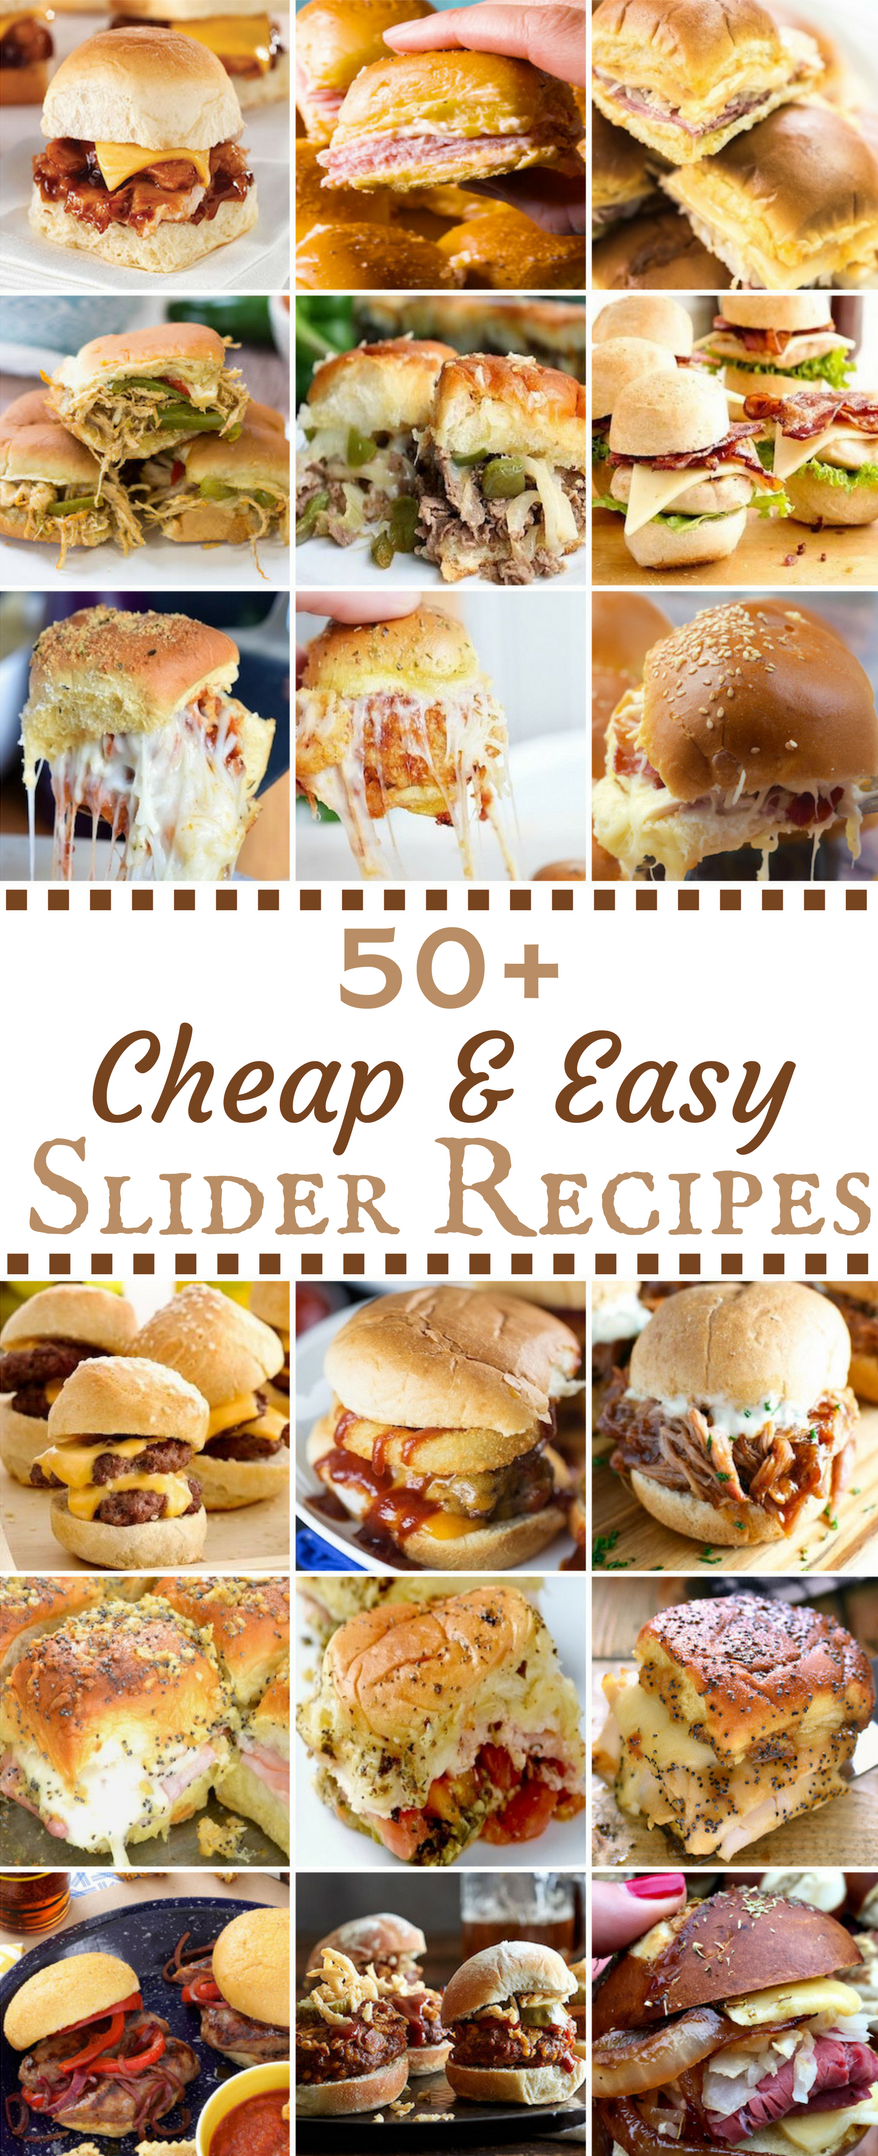 Inexpensive Dinner Party Ideas Part - 48: 50 Cheap U0026 Easy Slider Recipes